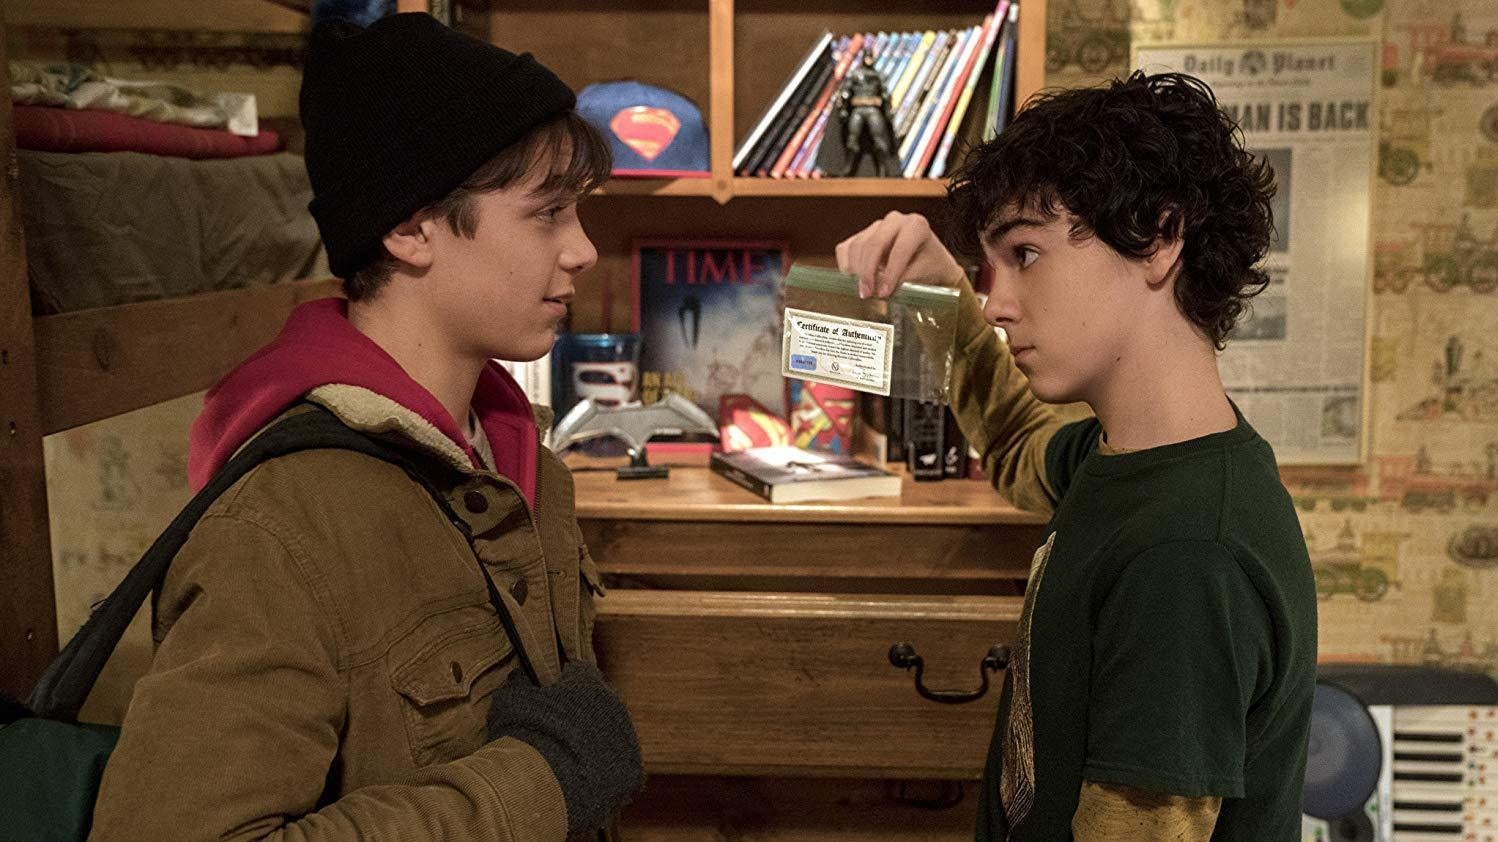 We Got A Glimpse Of Shazam, And Fell In Love With Billy's DC Fanboy Friend